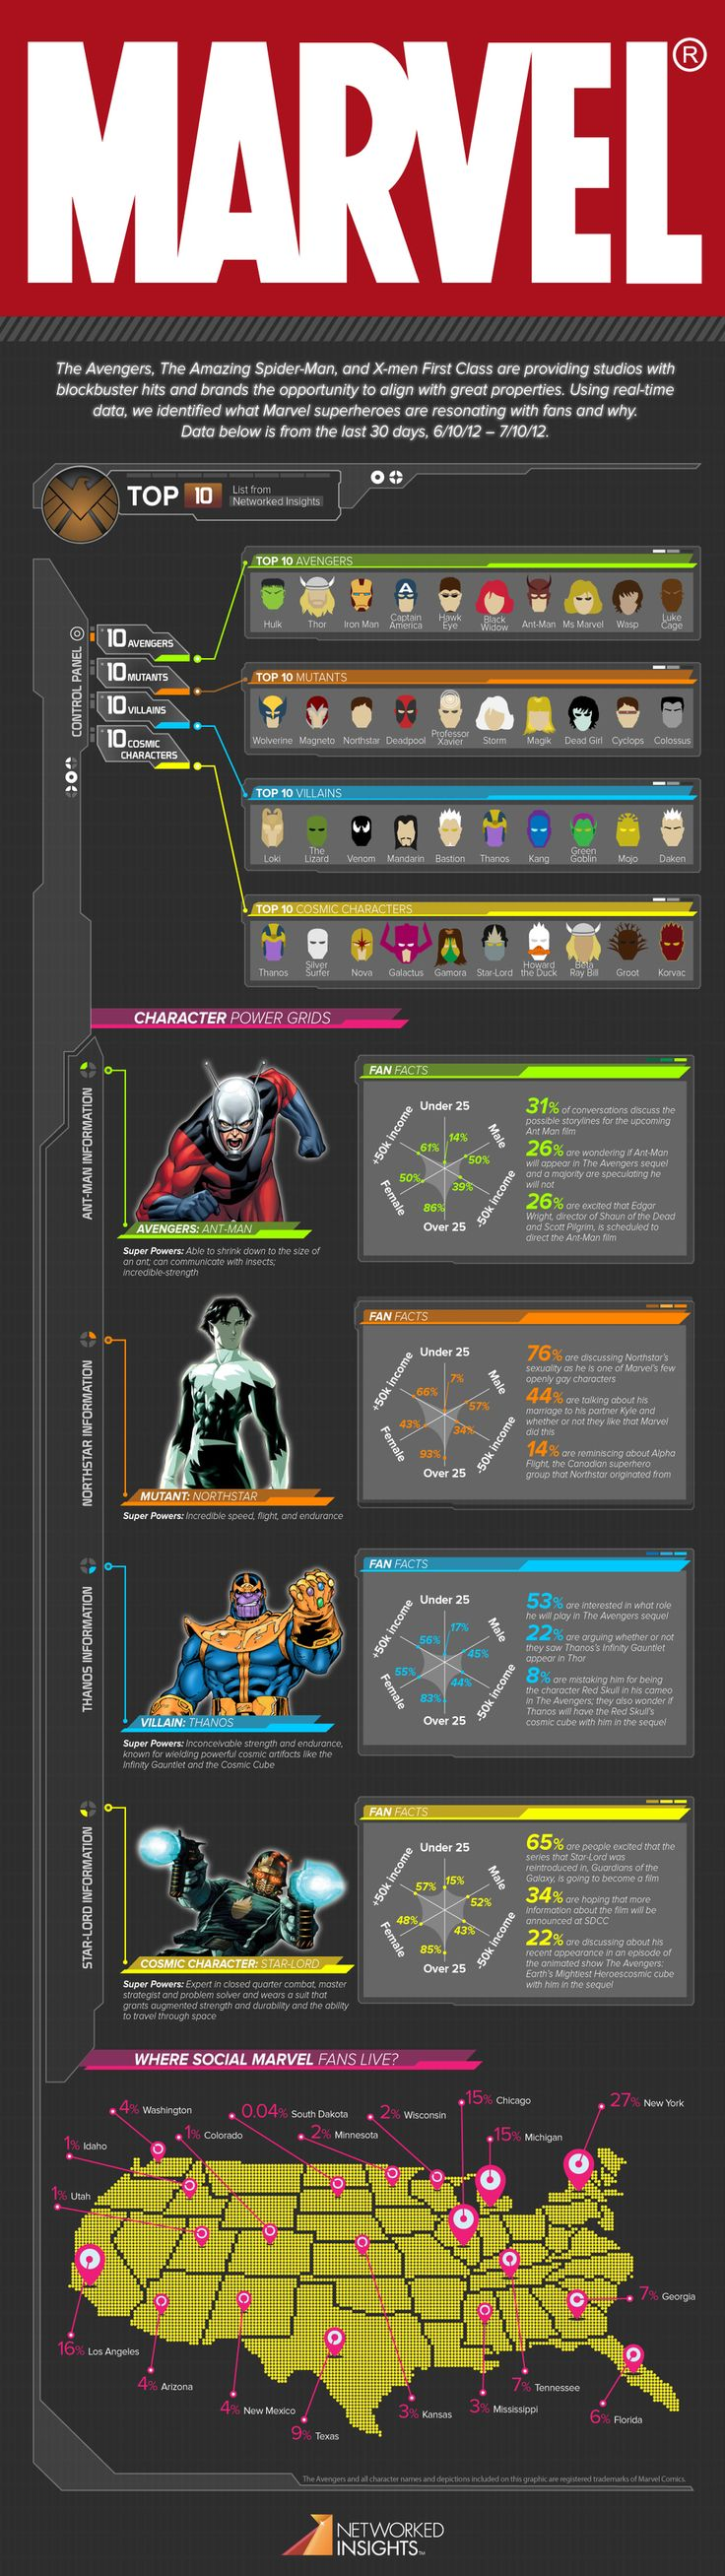 Marvel Superhero Infographic shows Most Popular Characters